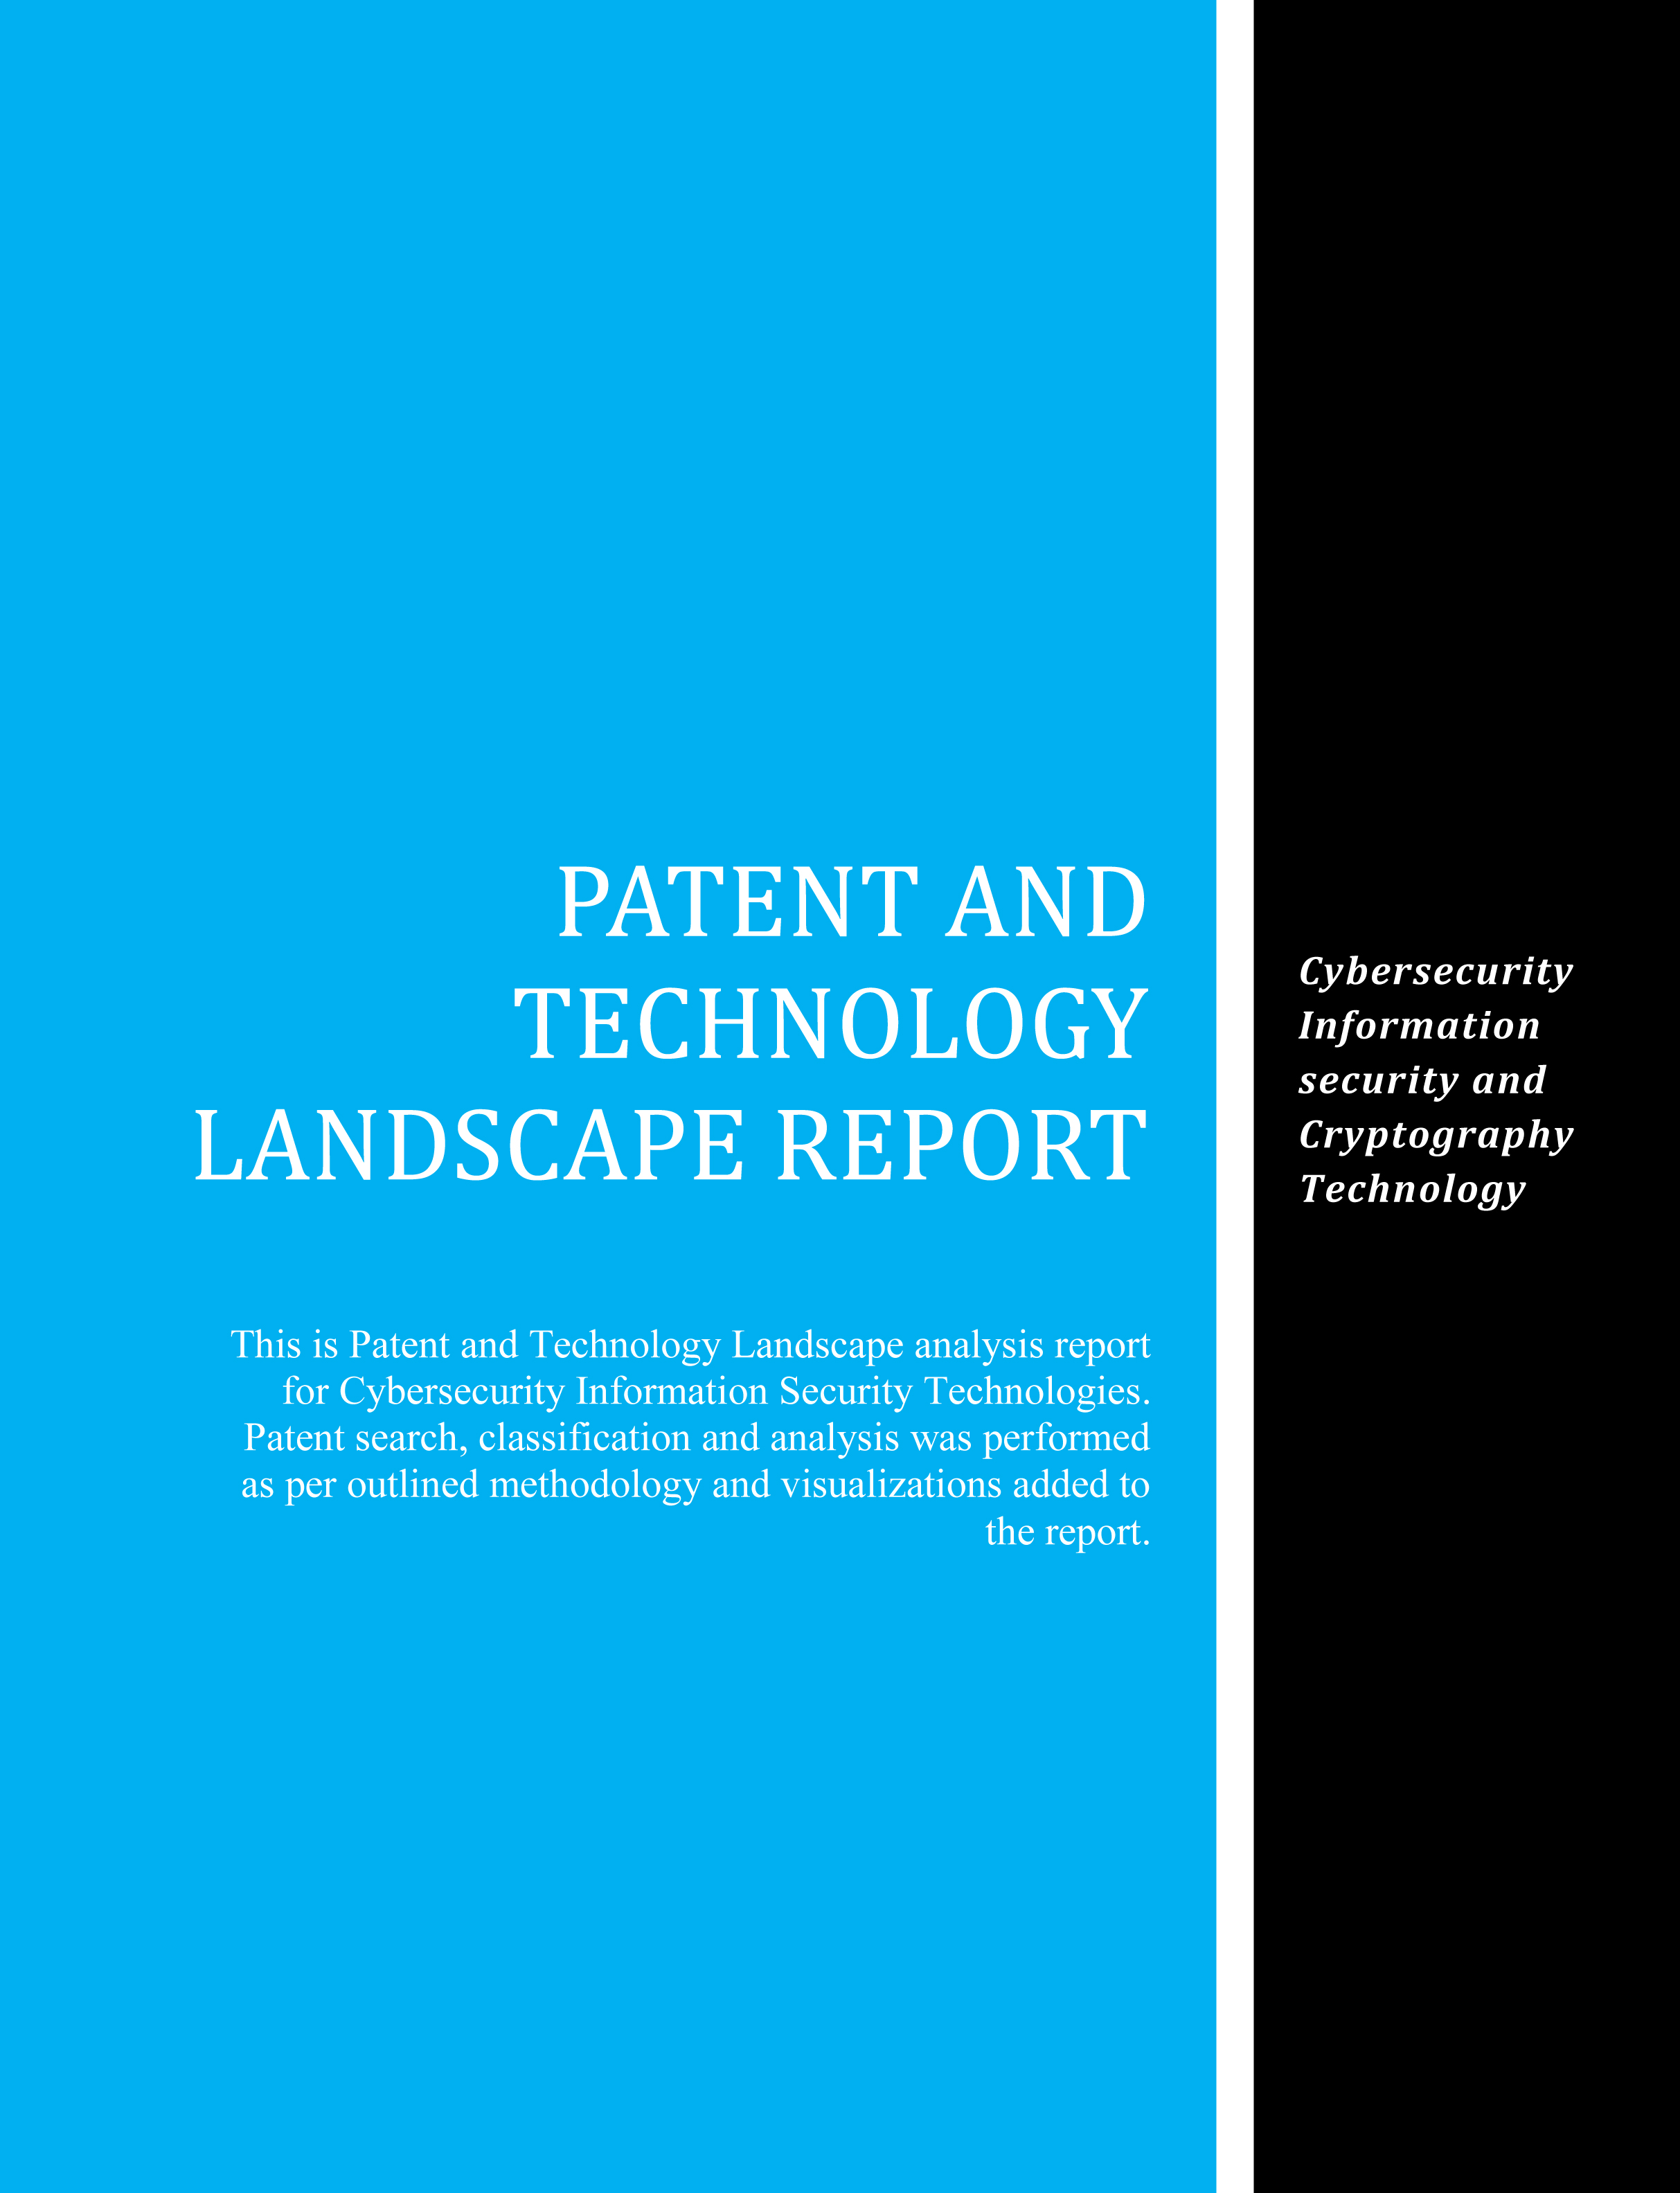 Cybersecurity Patent Technology Landscape Report